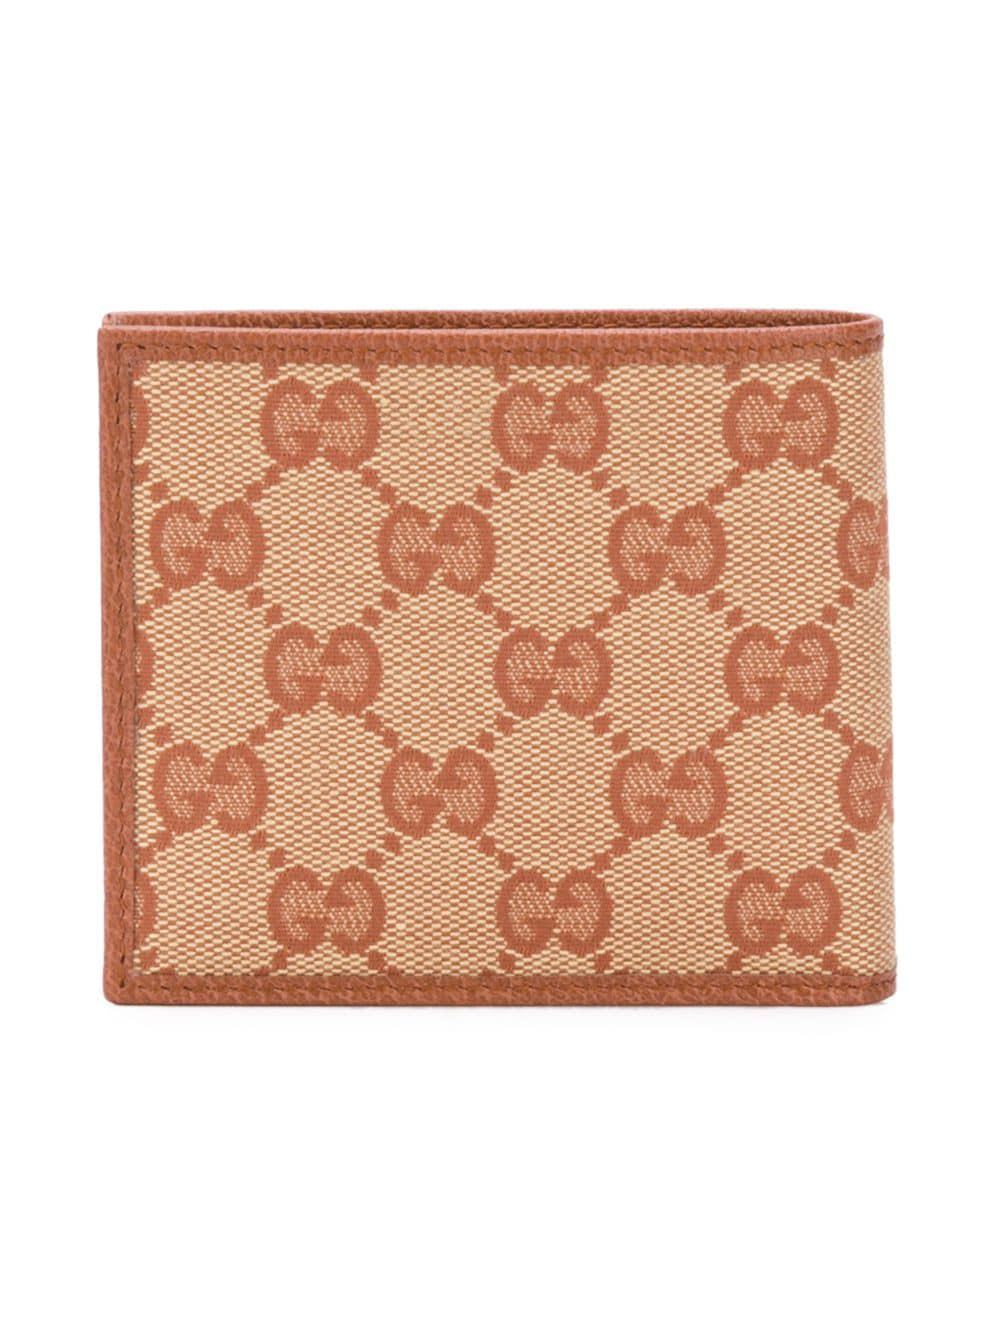 8b5fc781b555 Lyst - Gucci New York Yankees Patch Wallet in Brown for Men - Save 13%